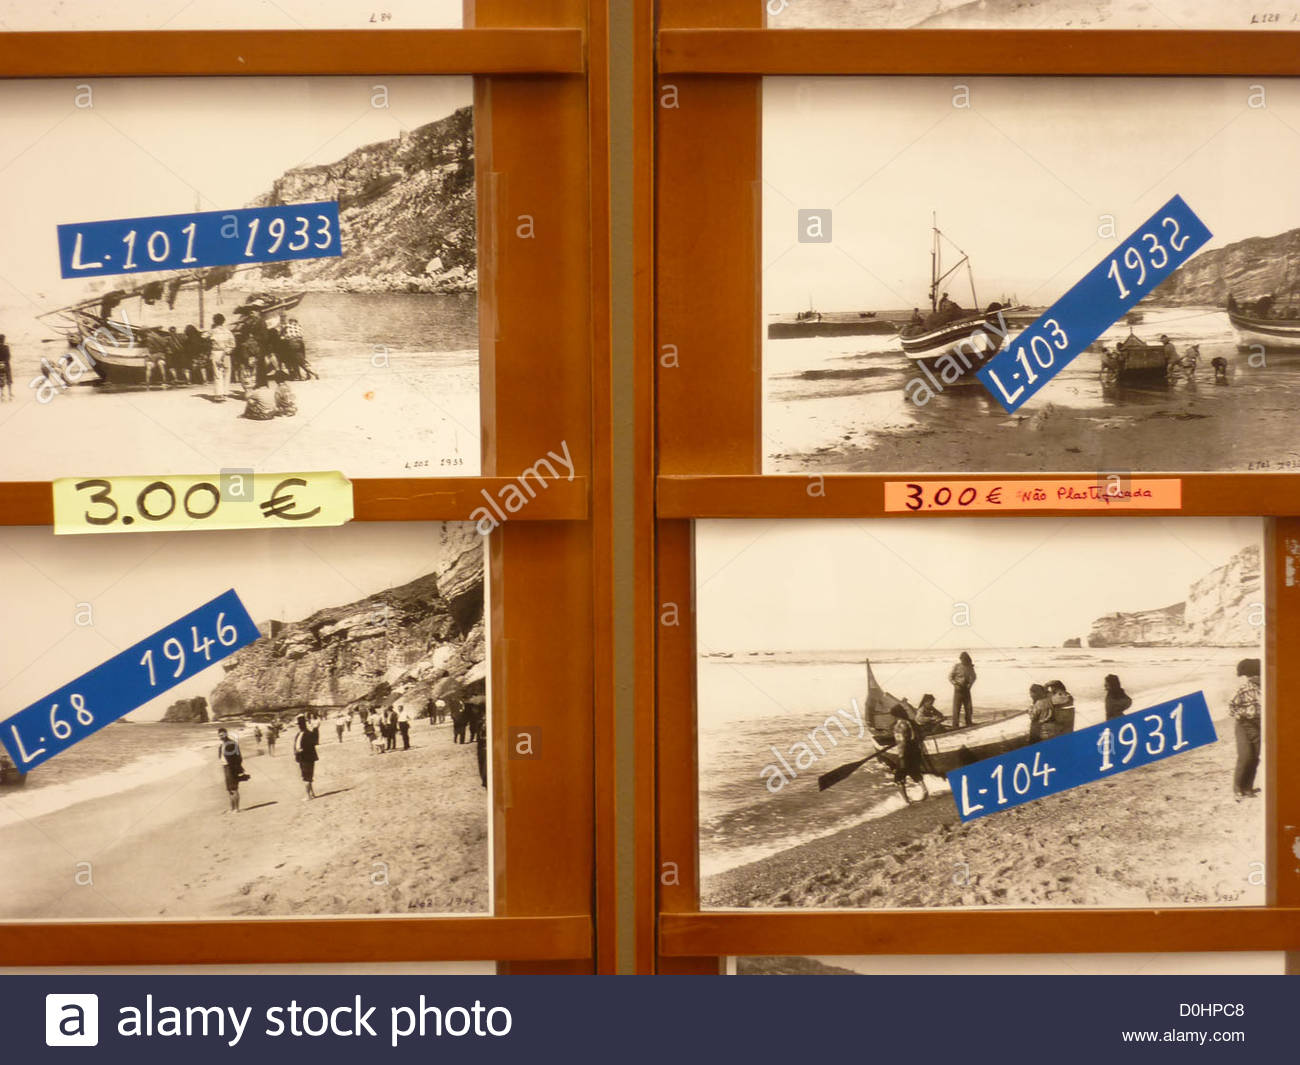 Old photographs of Nazaré Portugal - Stock Image